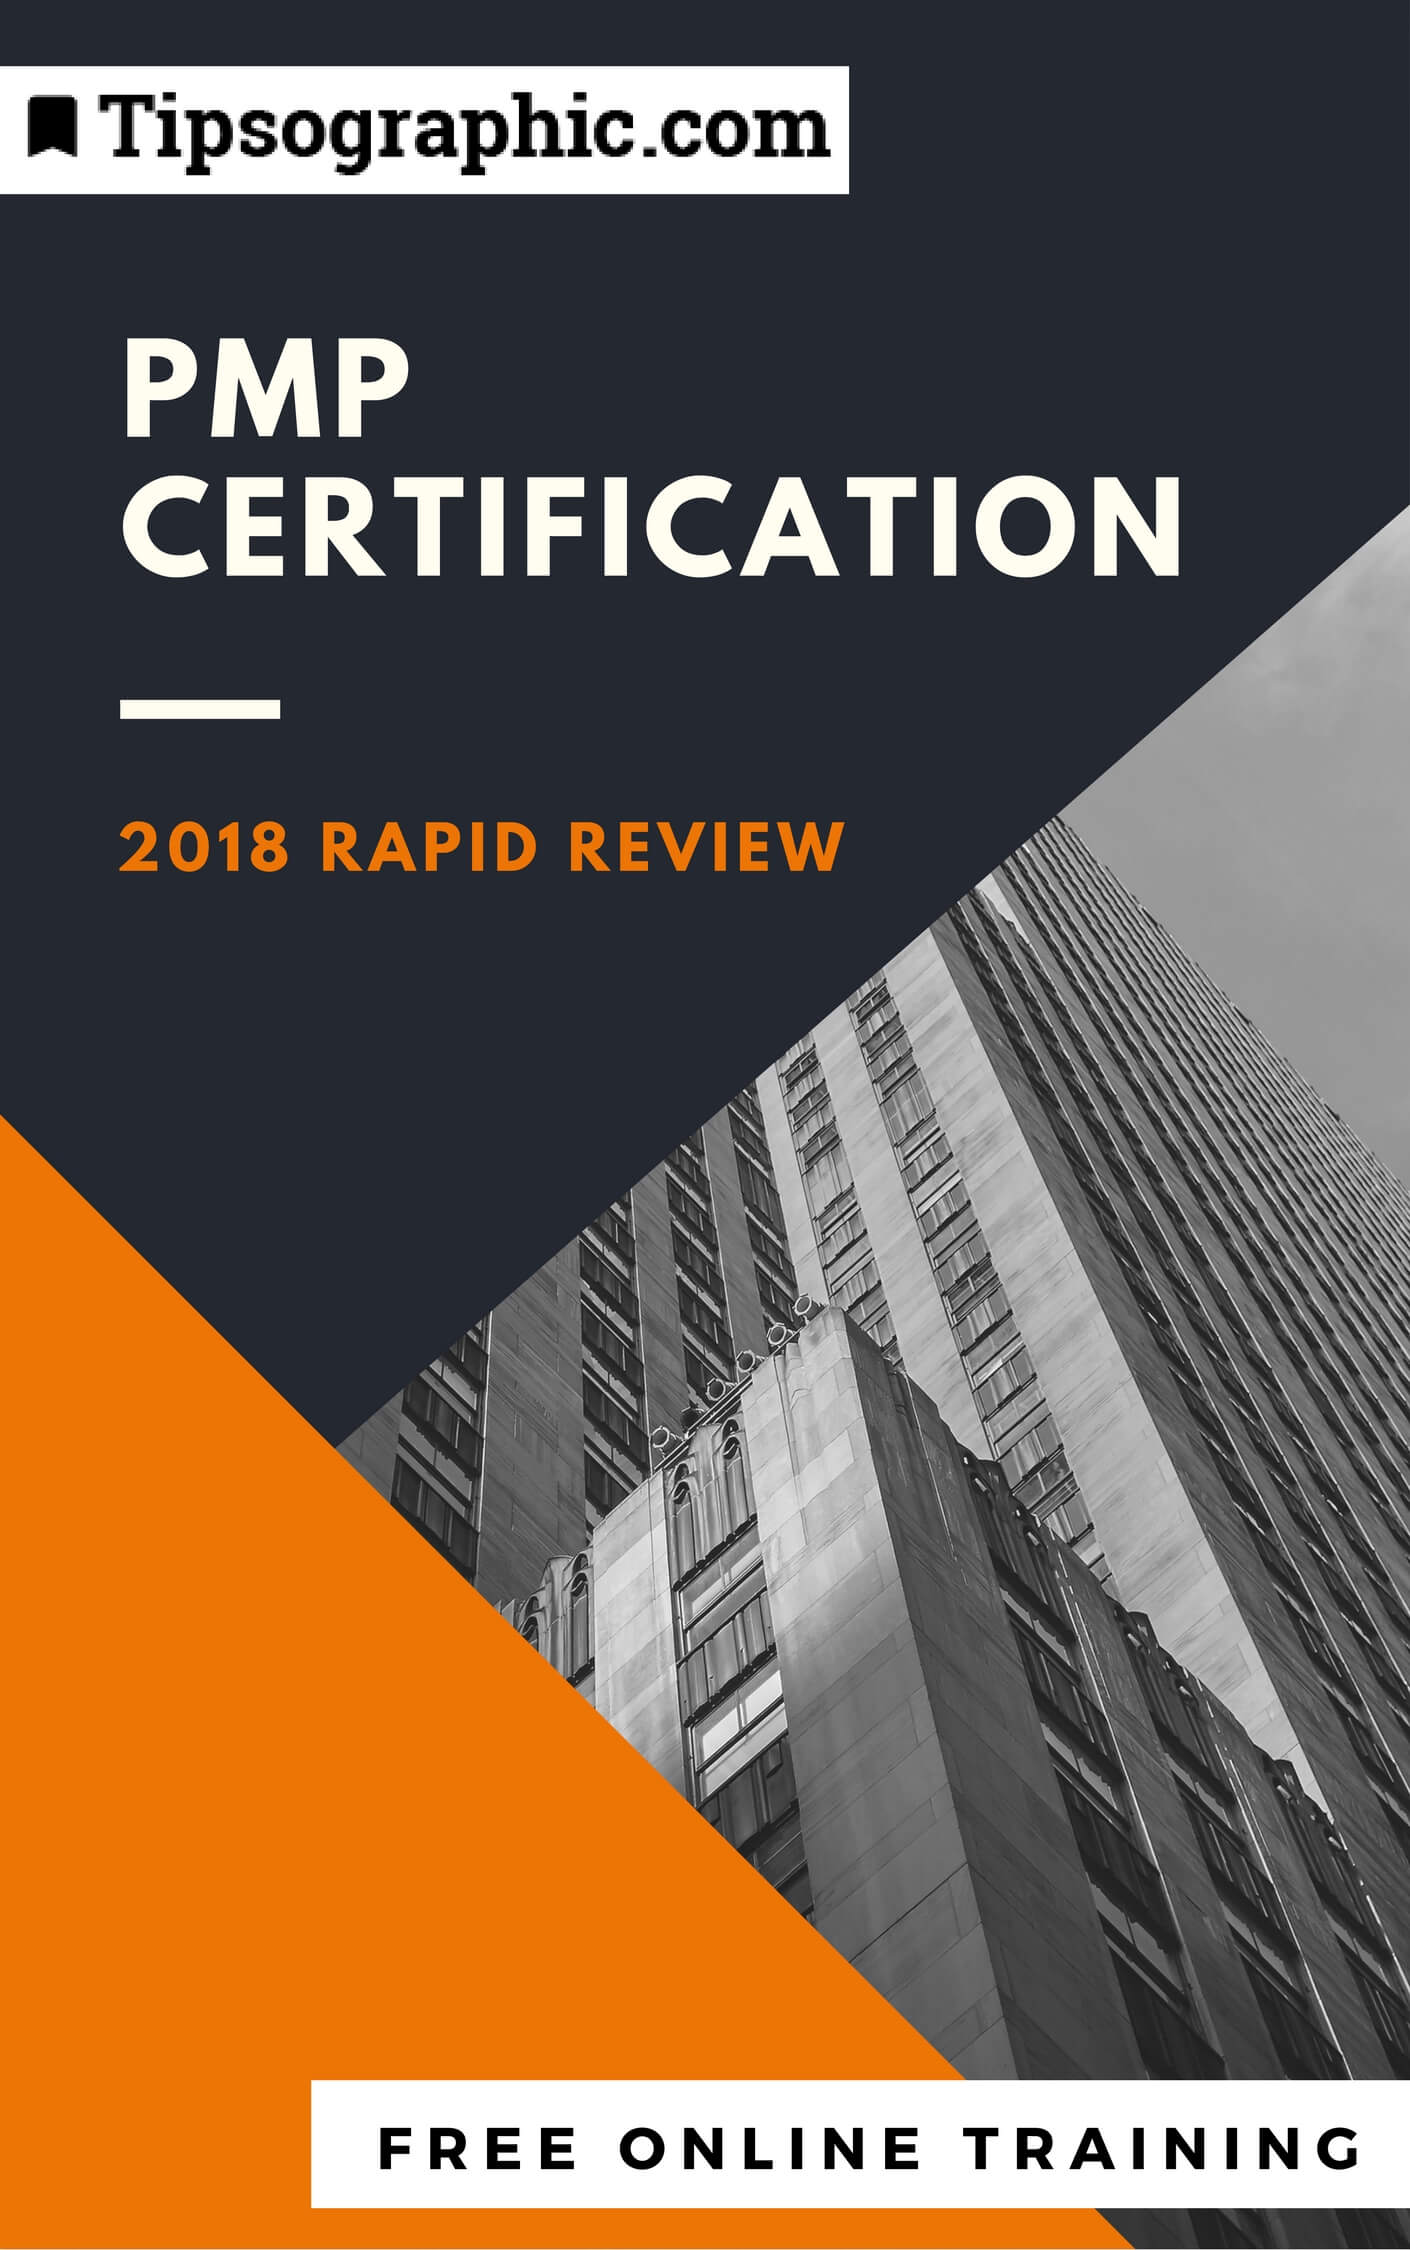 pmp certification 2018 rapid review free online training tipsographic (2)